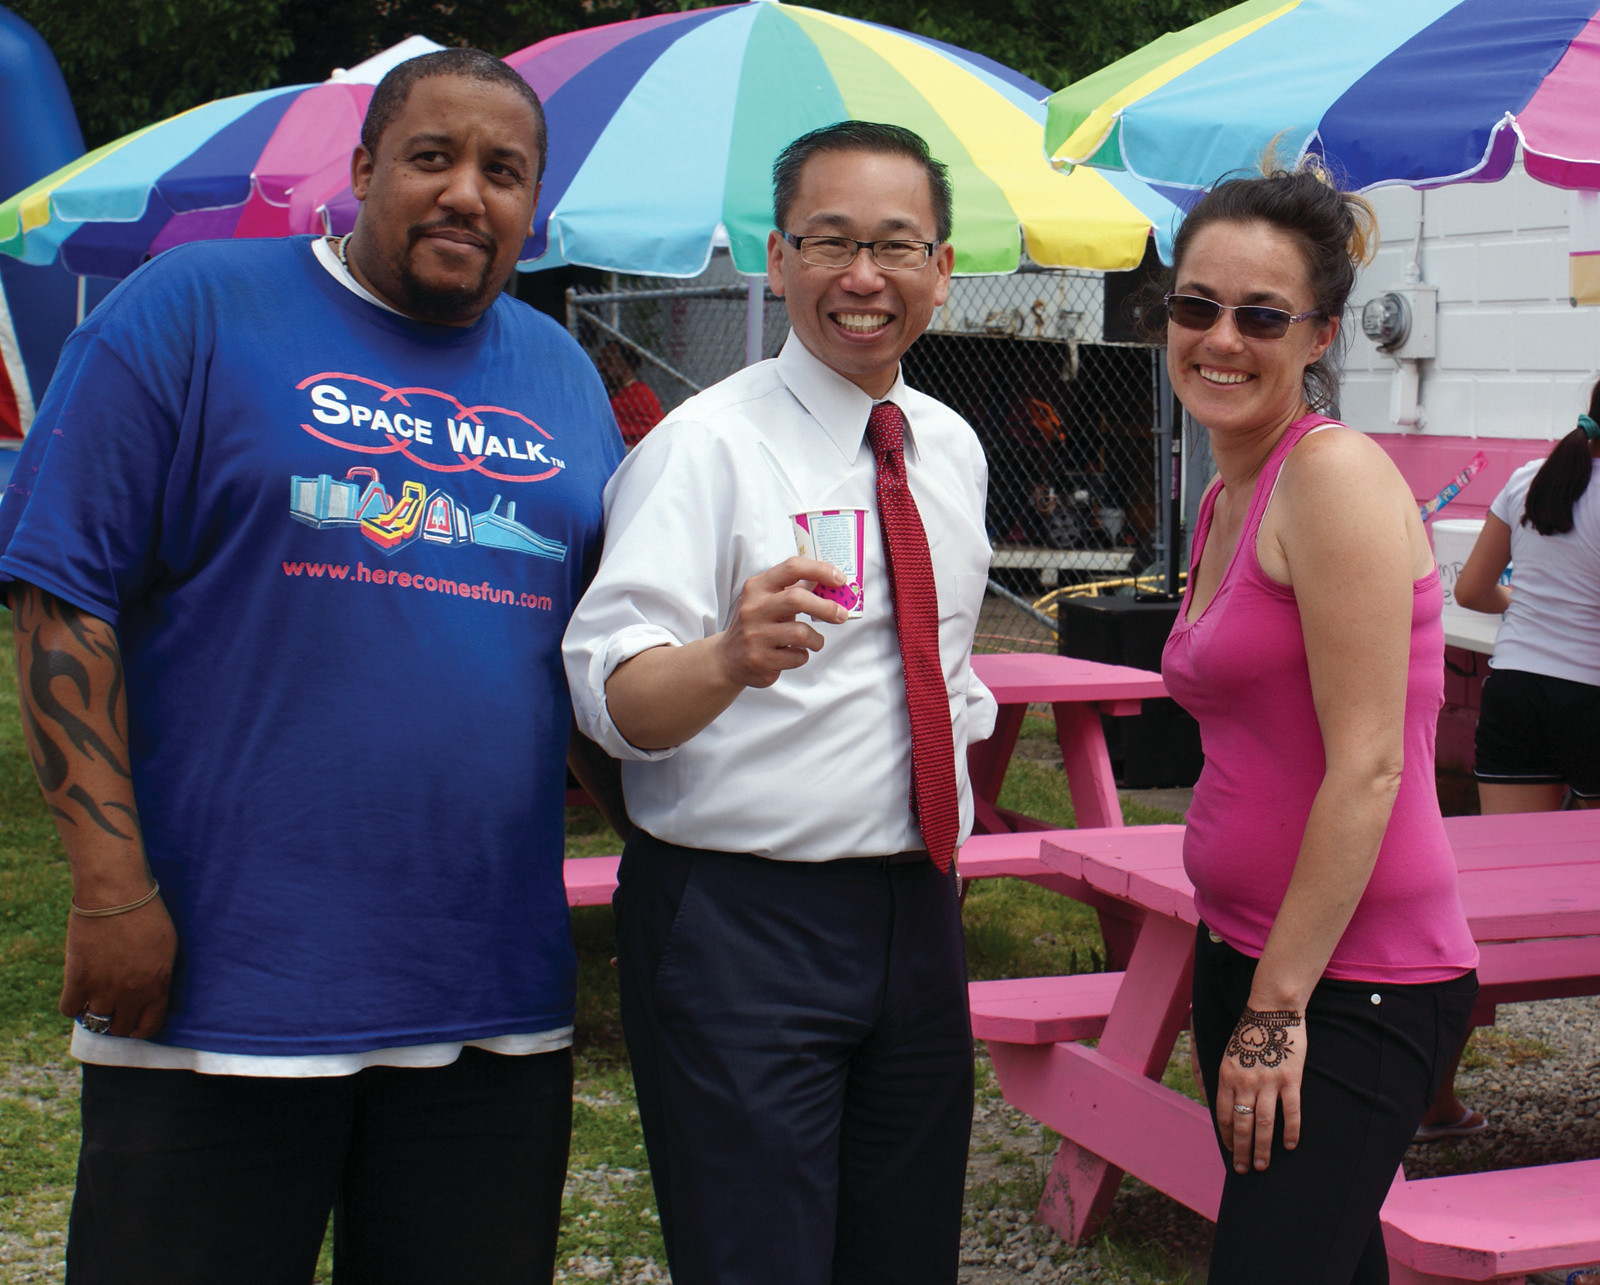 TIME FOR SLUSH: Cranston Mayor Allan Fung stopped by at the free Family Fun Day at the New England Slush Company and enjoyed his Pina Colada-Flavored slush. Pictured with the Mayor are Co-owners Derek Nelson and Crystal Larkin.